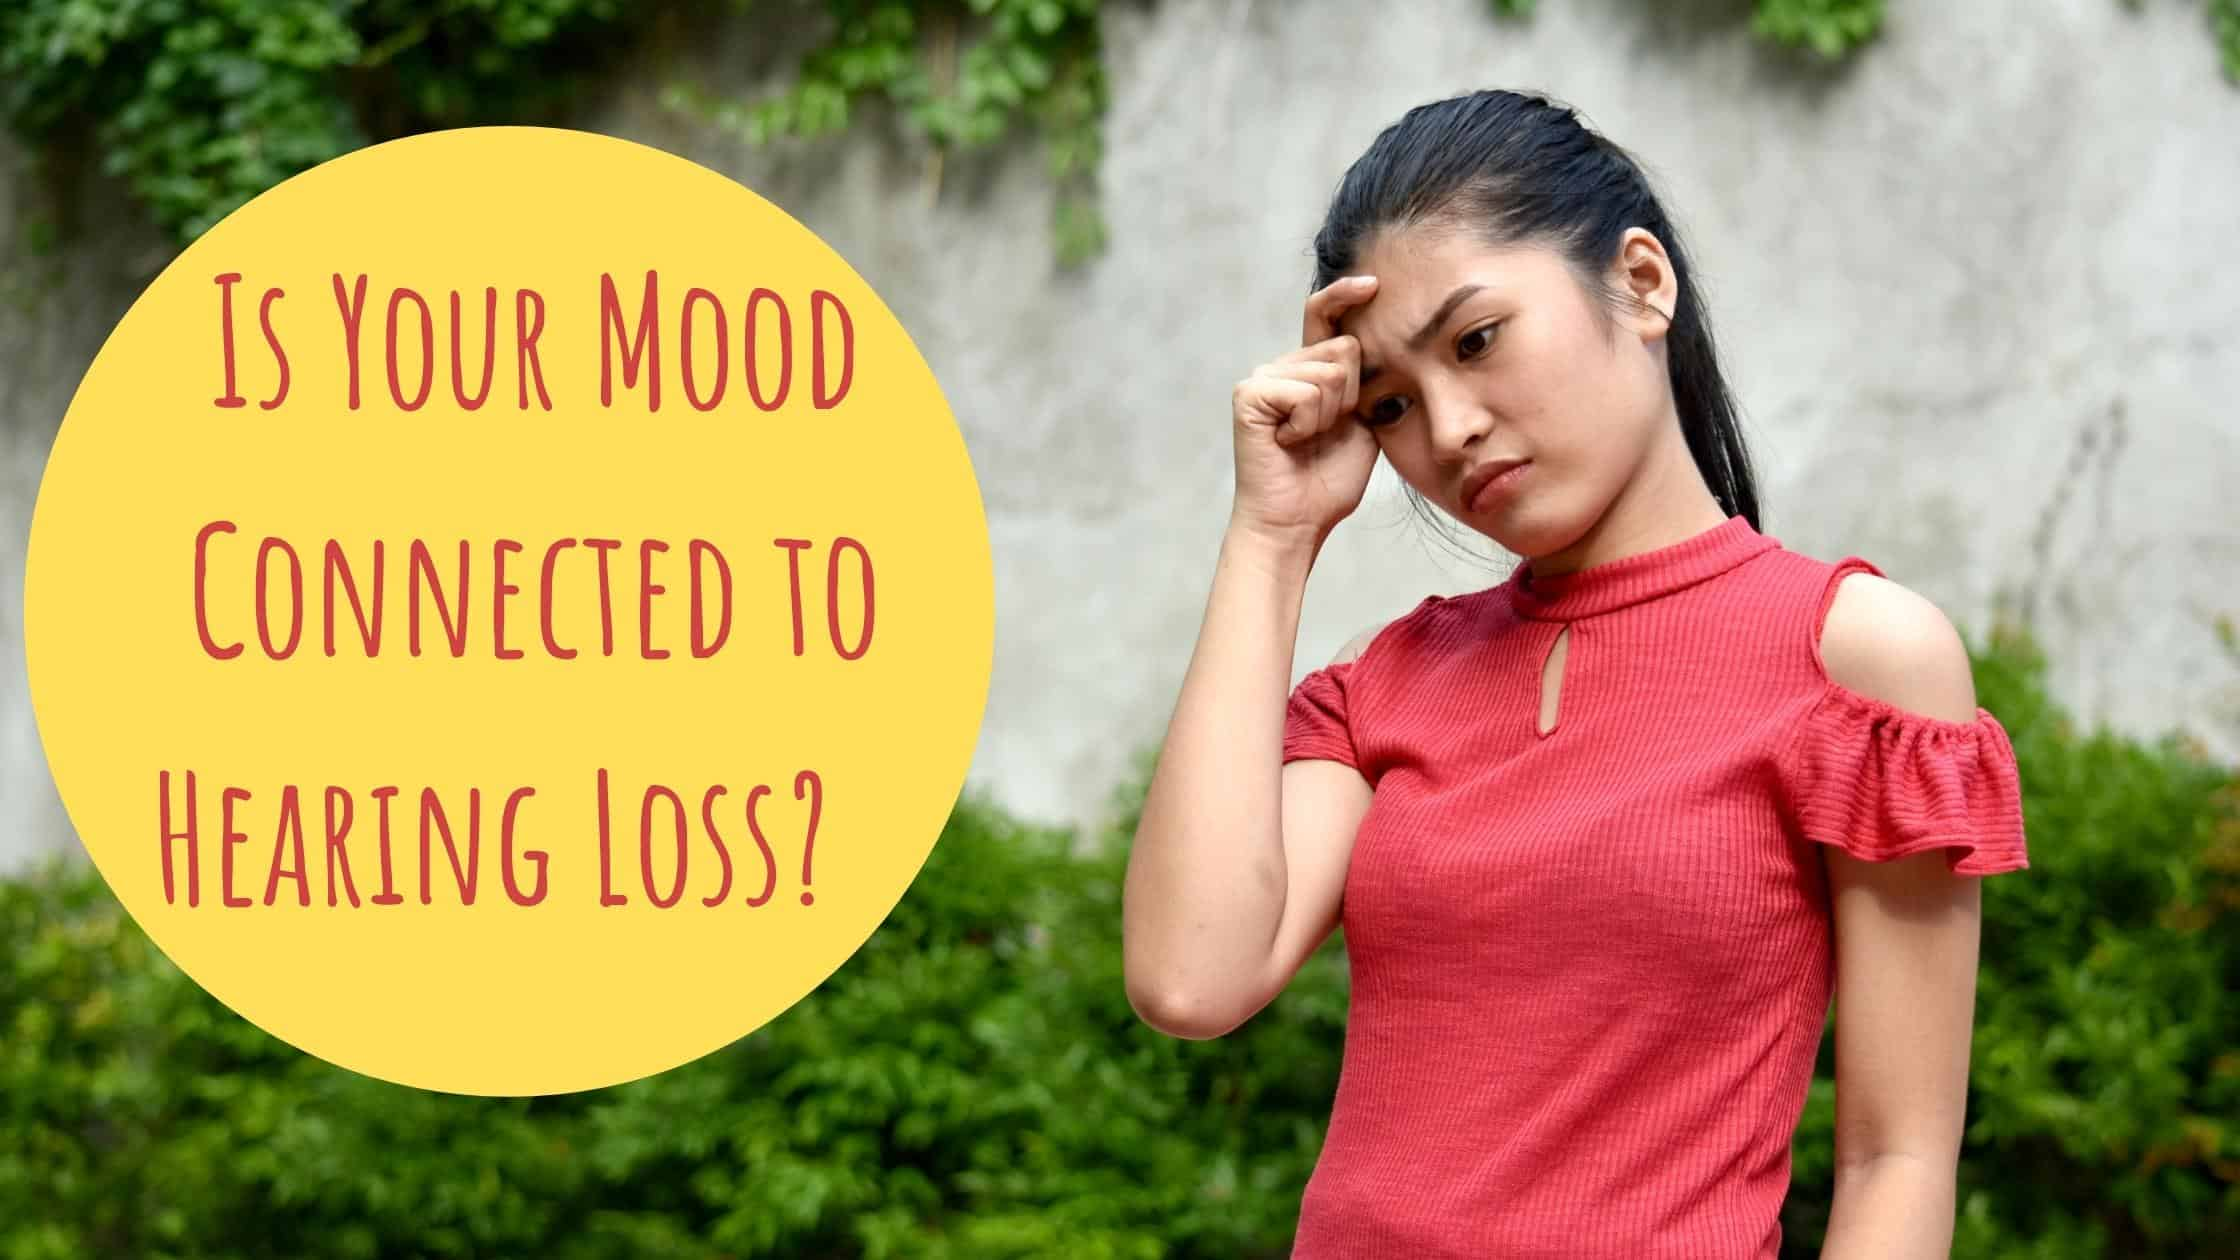 Is Your Mood Connected to Hearing Loss